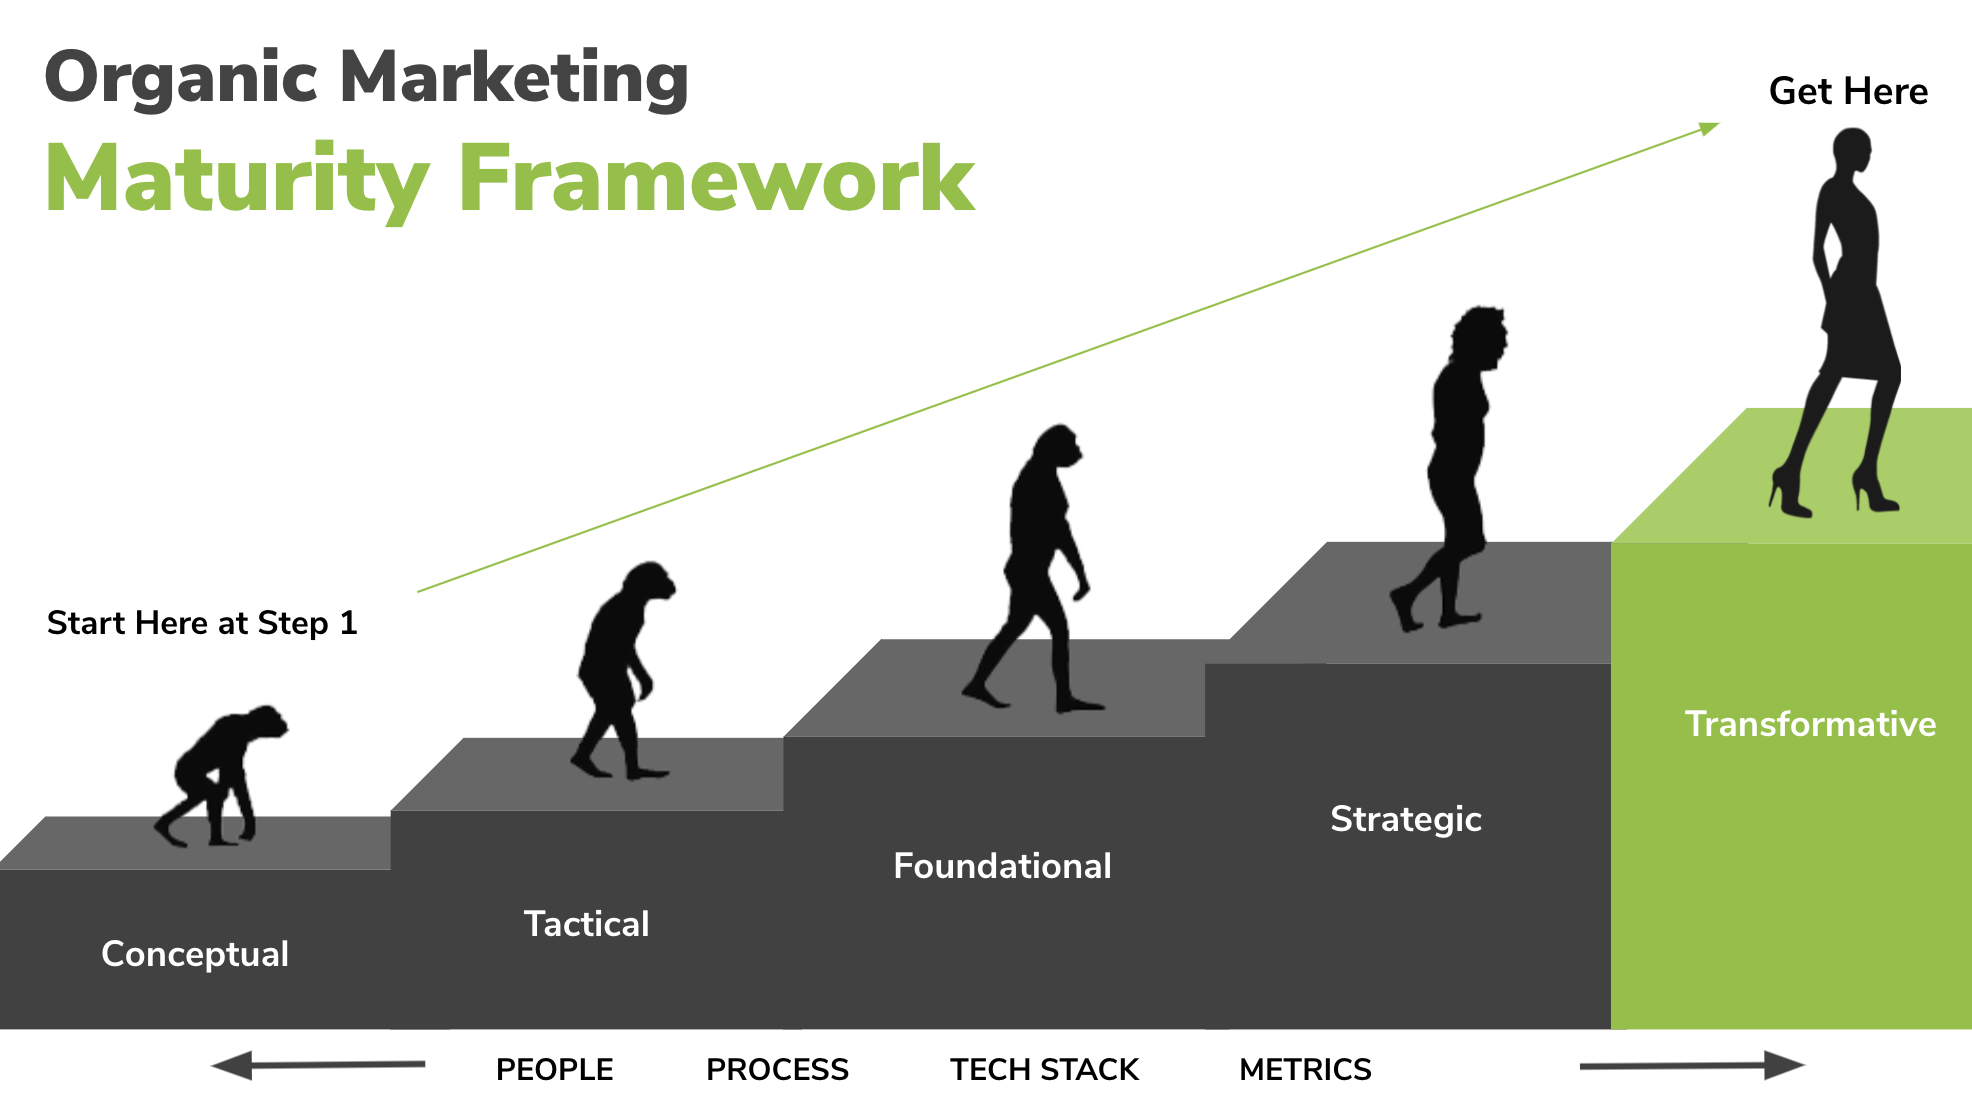 Organic Marketing Maturity Framework